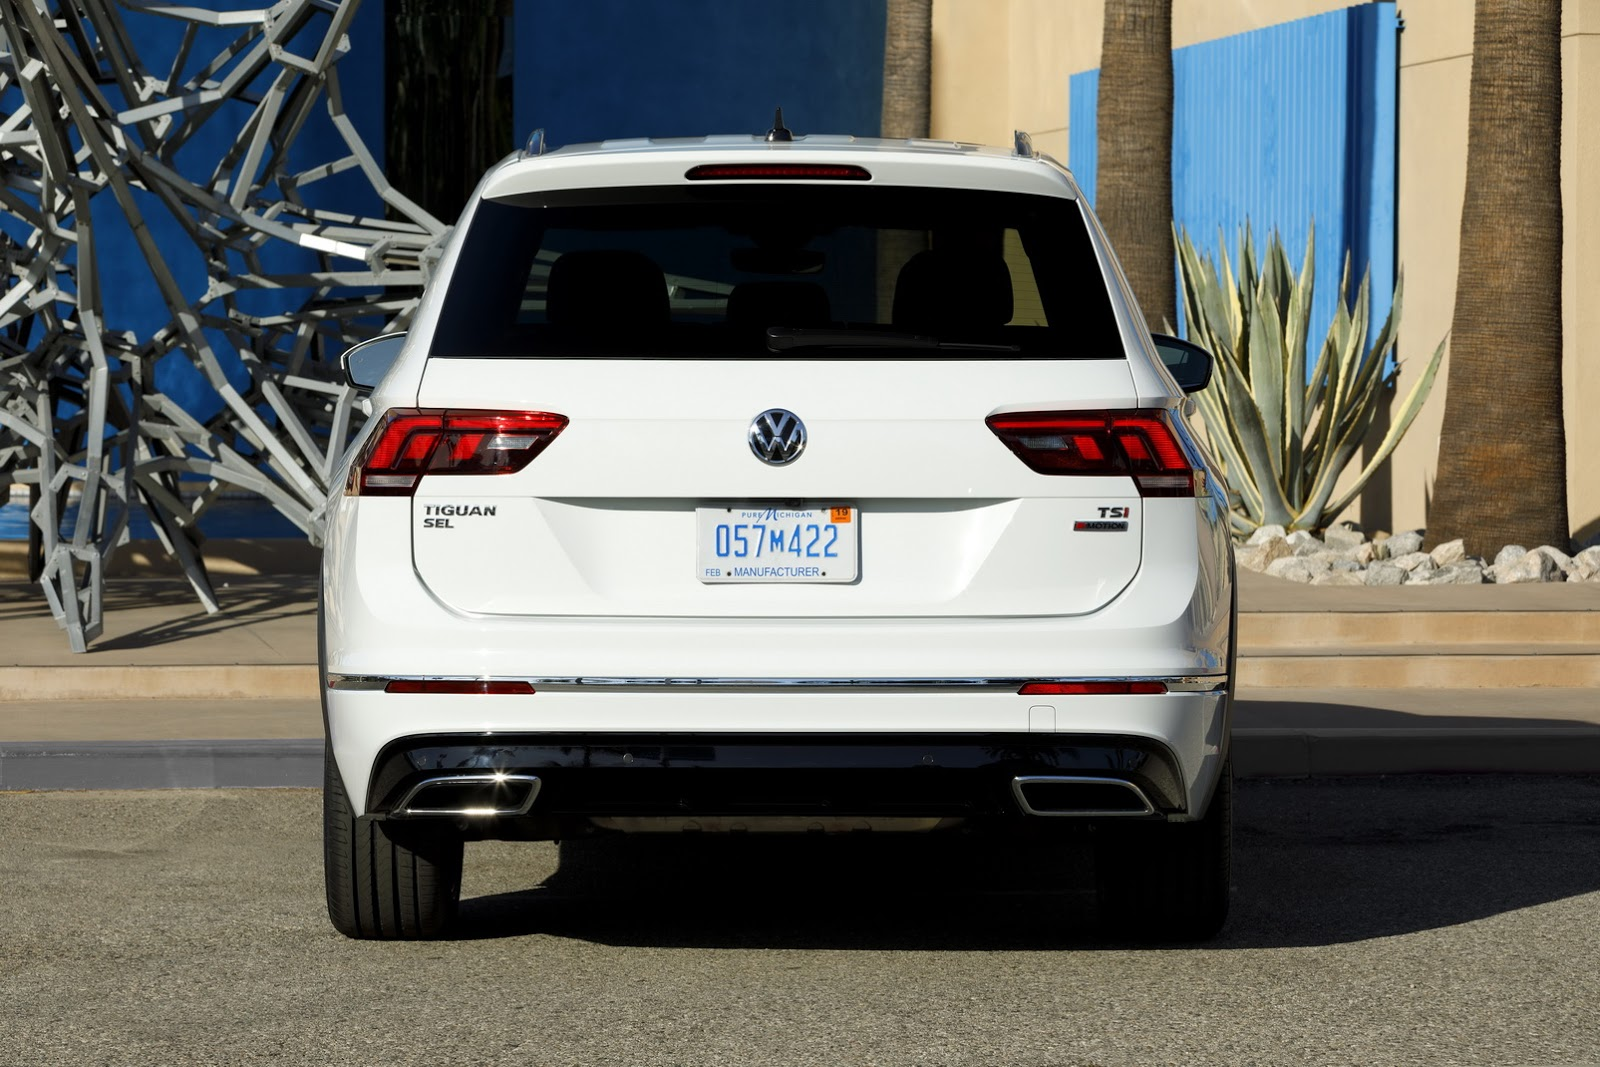 2018 volkswagen tiguan gets r line body kit in america autoevolution. Black Bedroom Furniture Sets. Home Design Ideas